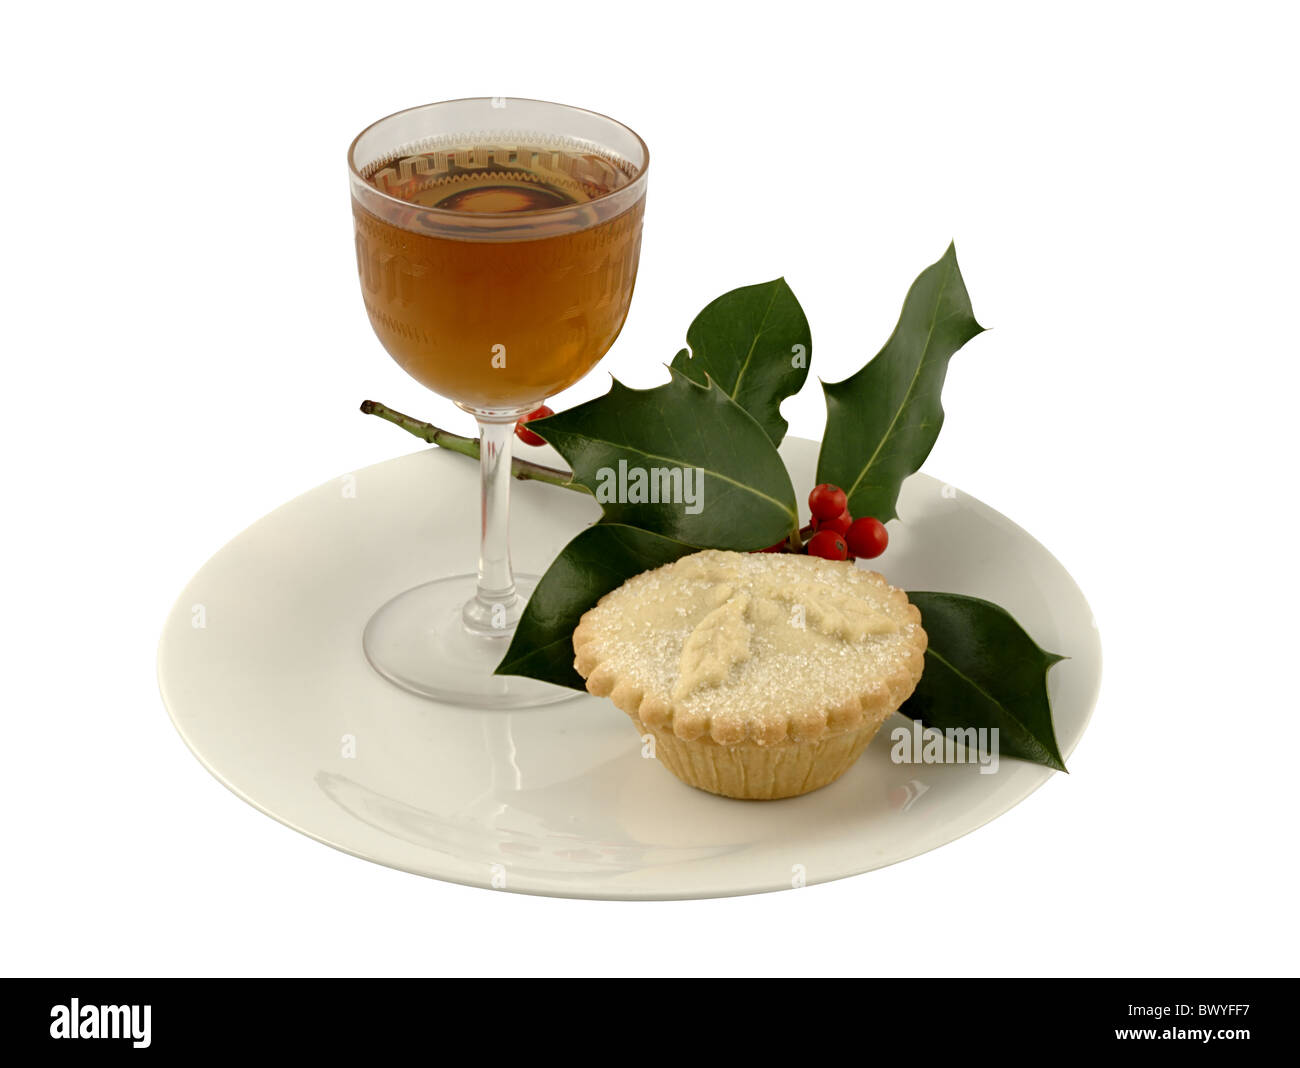 A Christmas mince pie with a glass of sherry and a sprig of holly - Stock Image